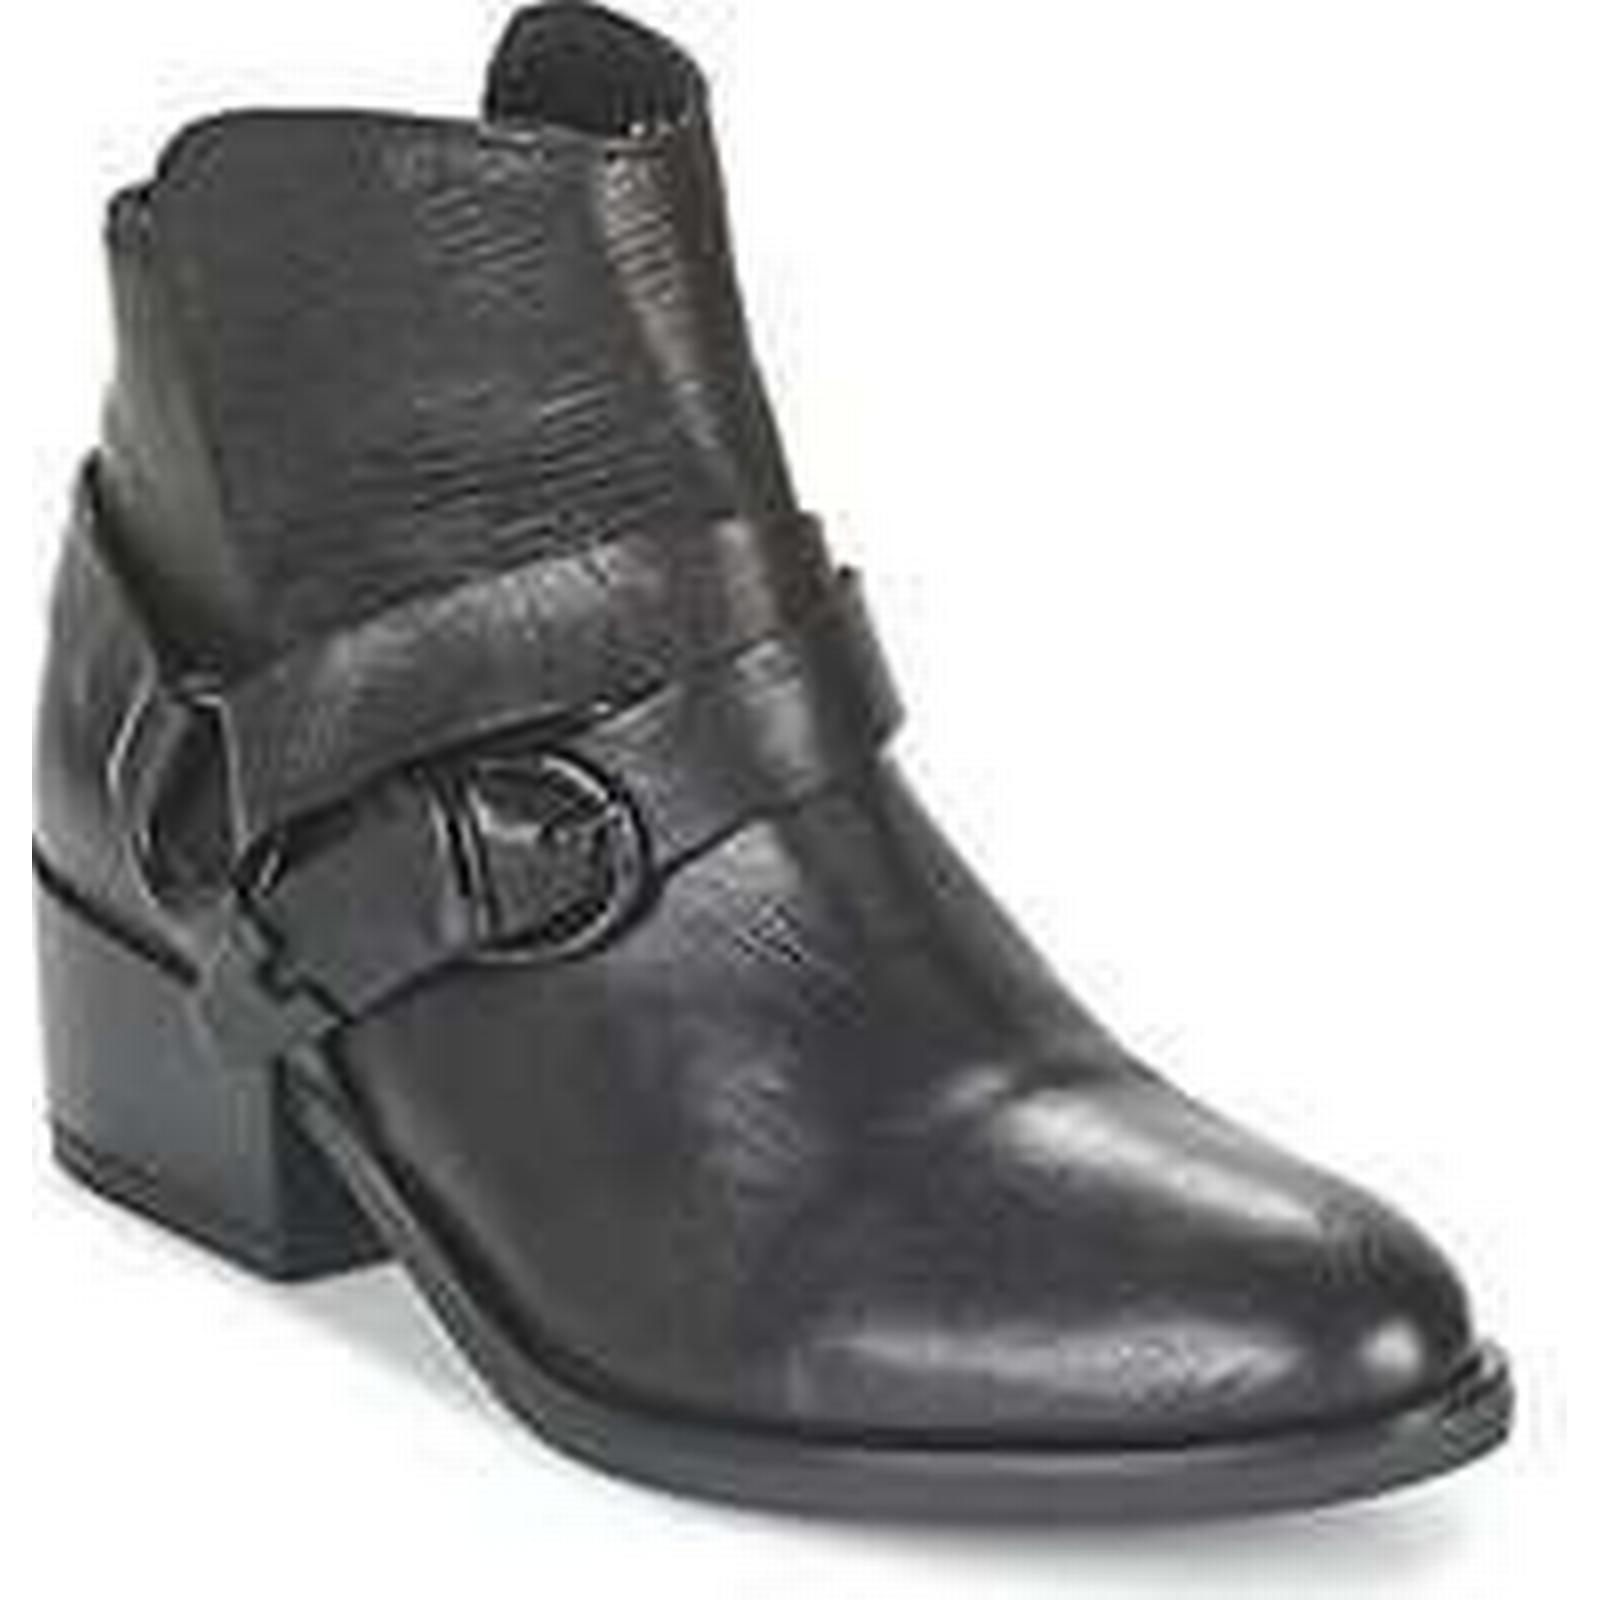 Spartoo.co.uk Low Lola Espeleta VATUM women's Low Spartoo.co.uk Ankle Boots in Black bb9013